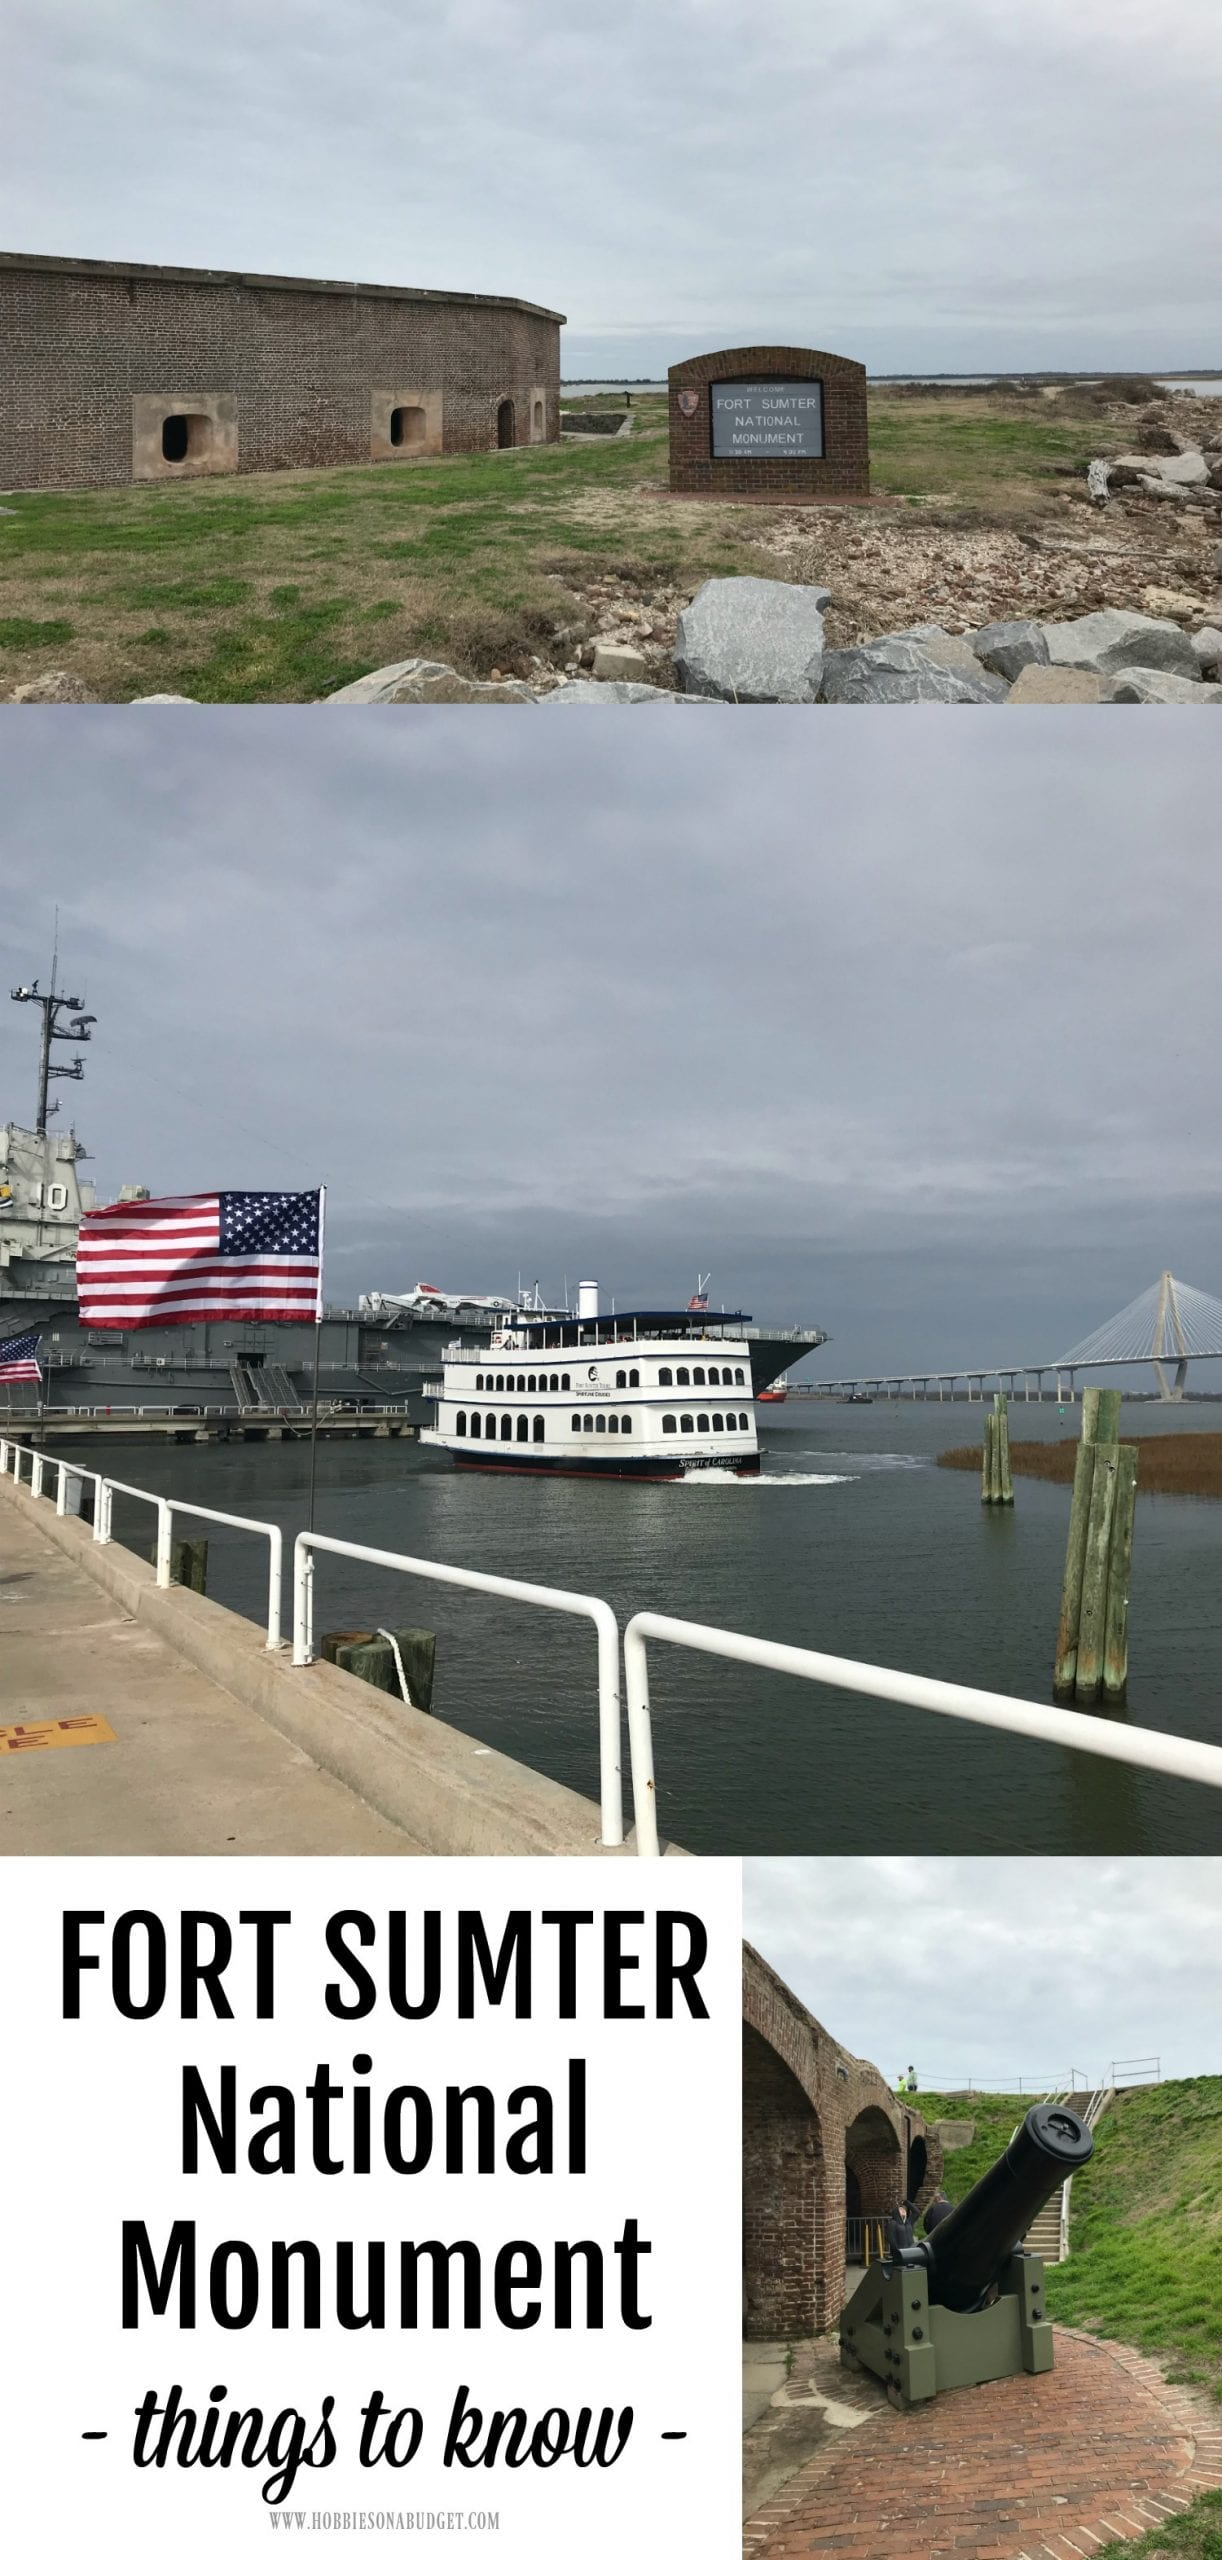 Fort Sumter National Monument things to know